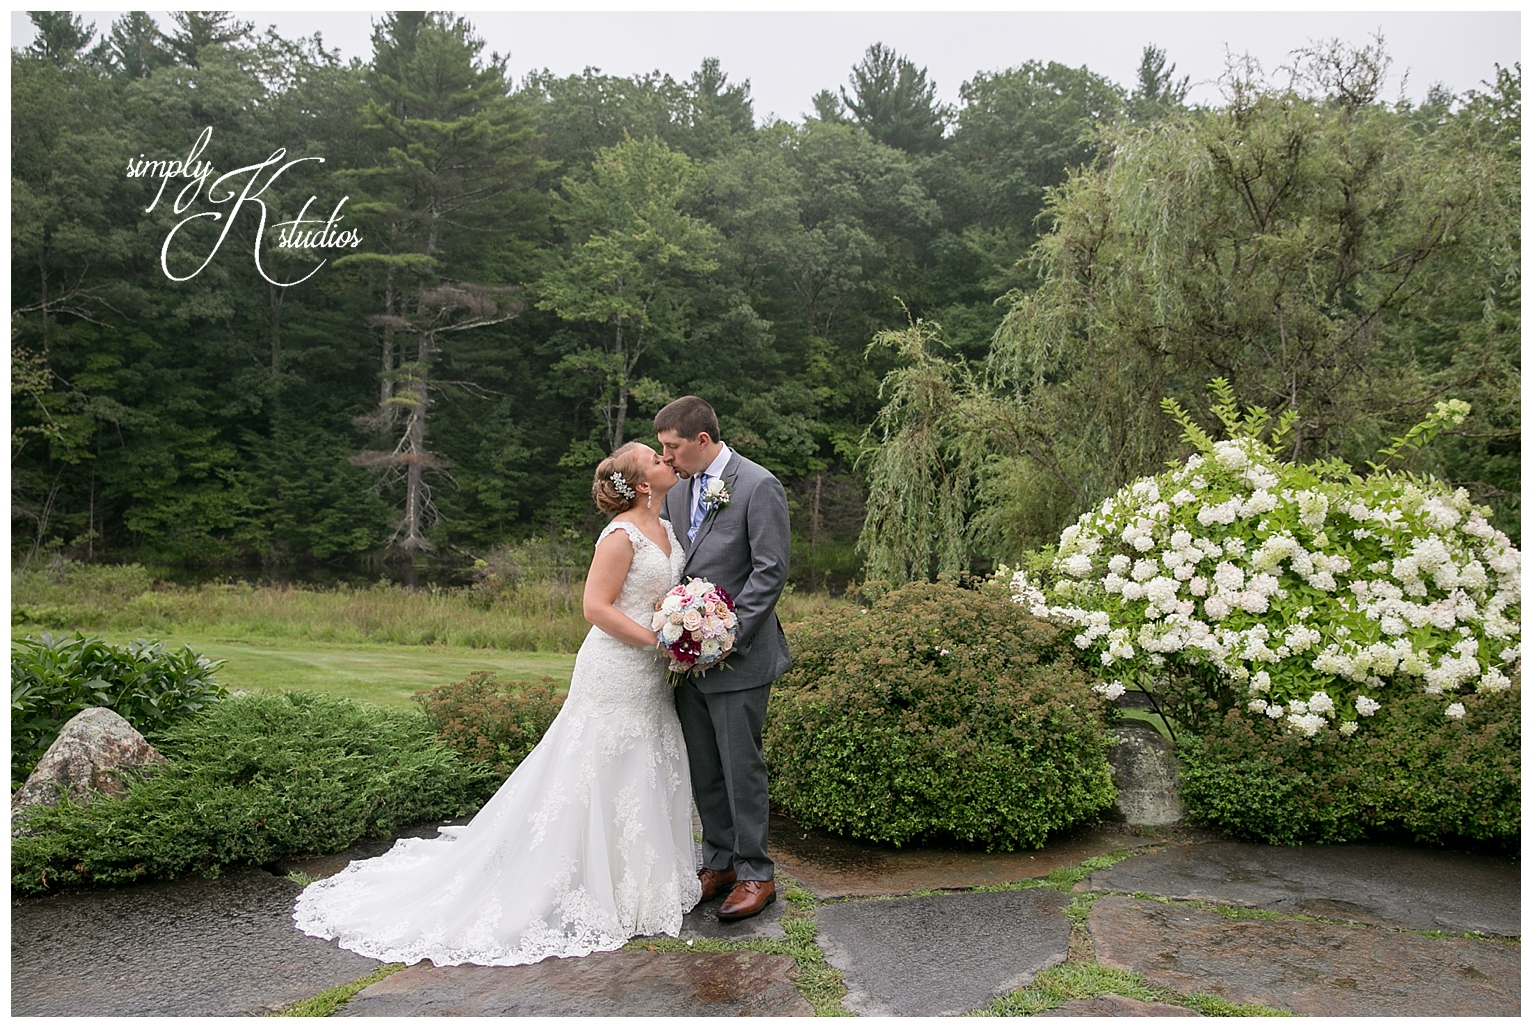 Rainy Day Wedding at Harrington Farm.jpg